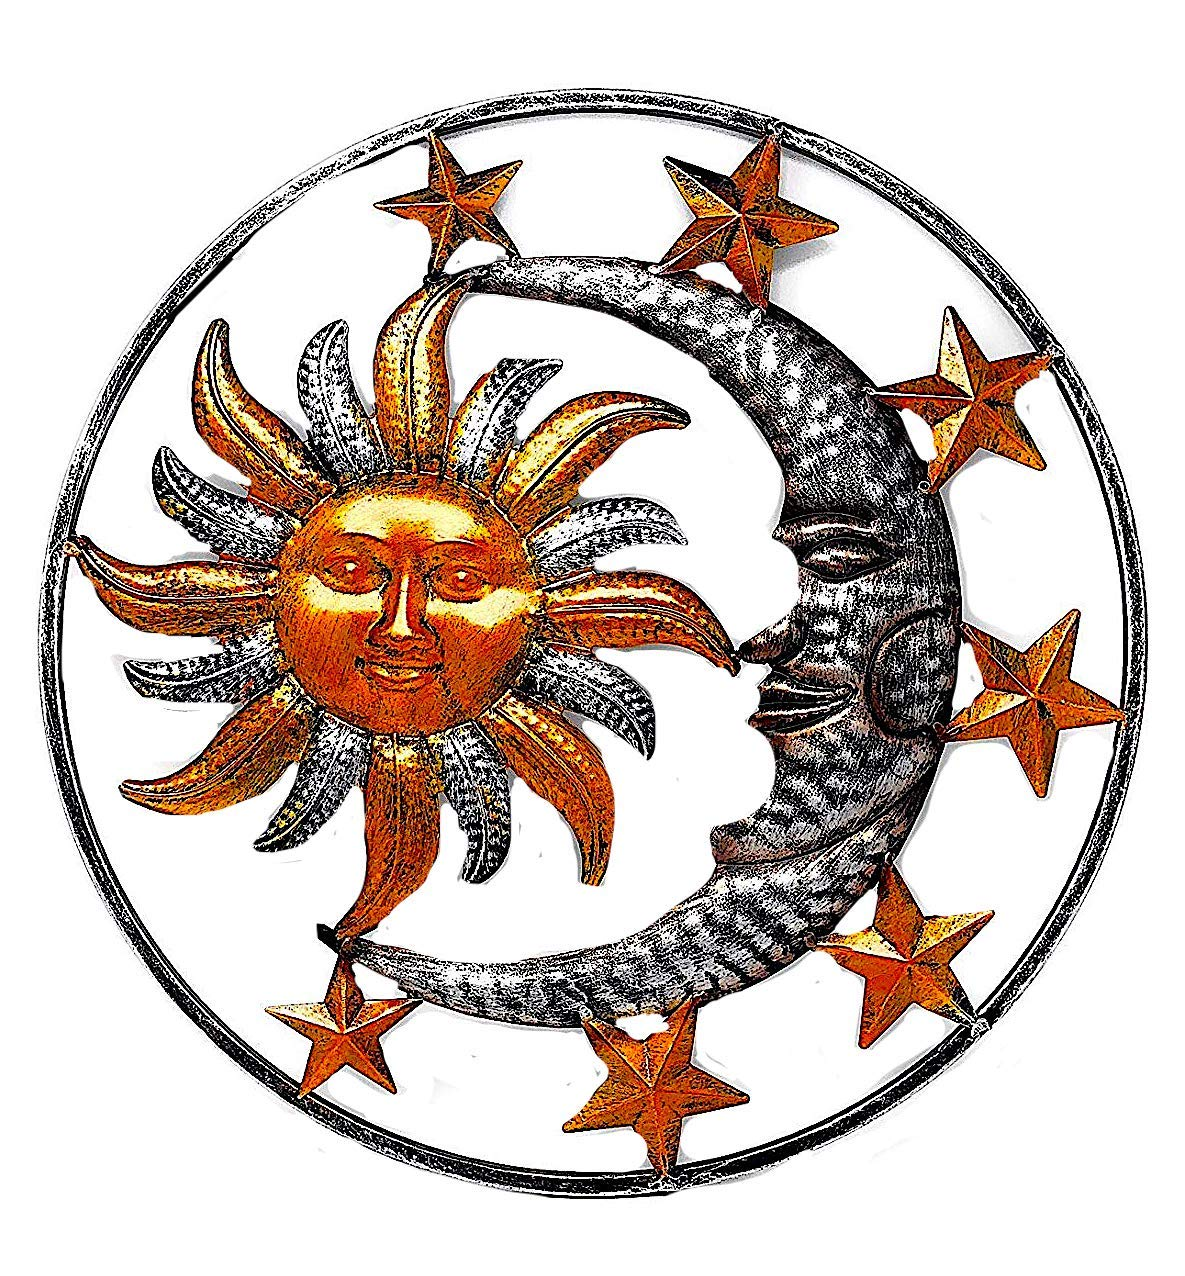 "Large Metal Sun Moon Star Wall Art Sculpture Decor for Indoor Outdoor (17"" Diameter)"